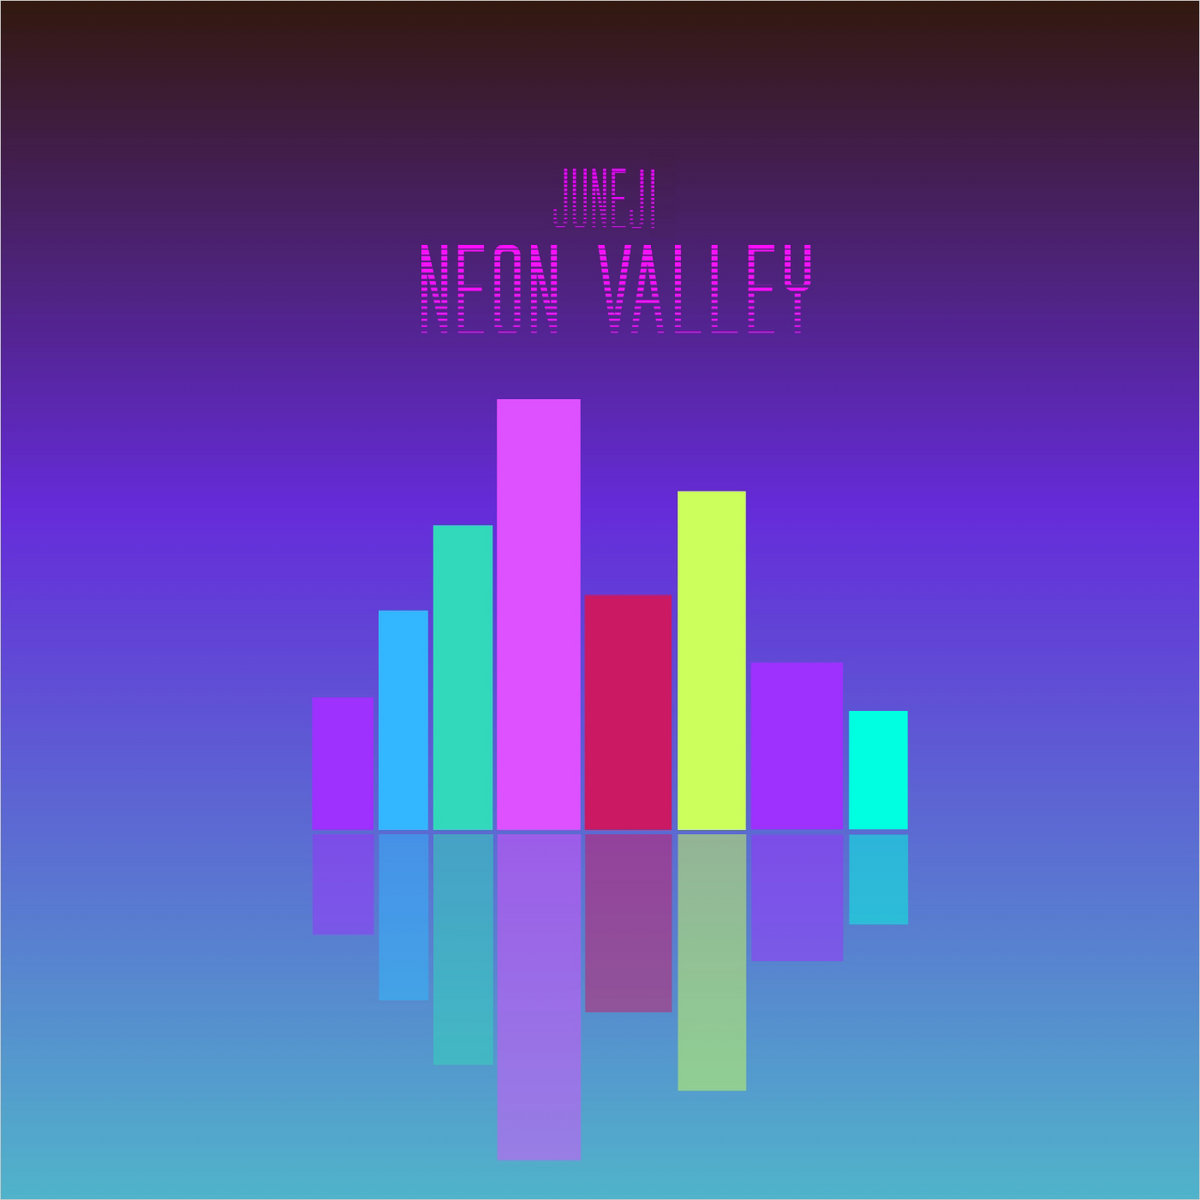 Neon Valley